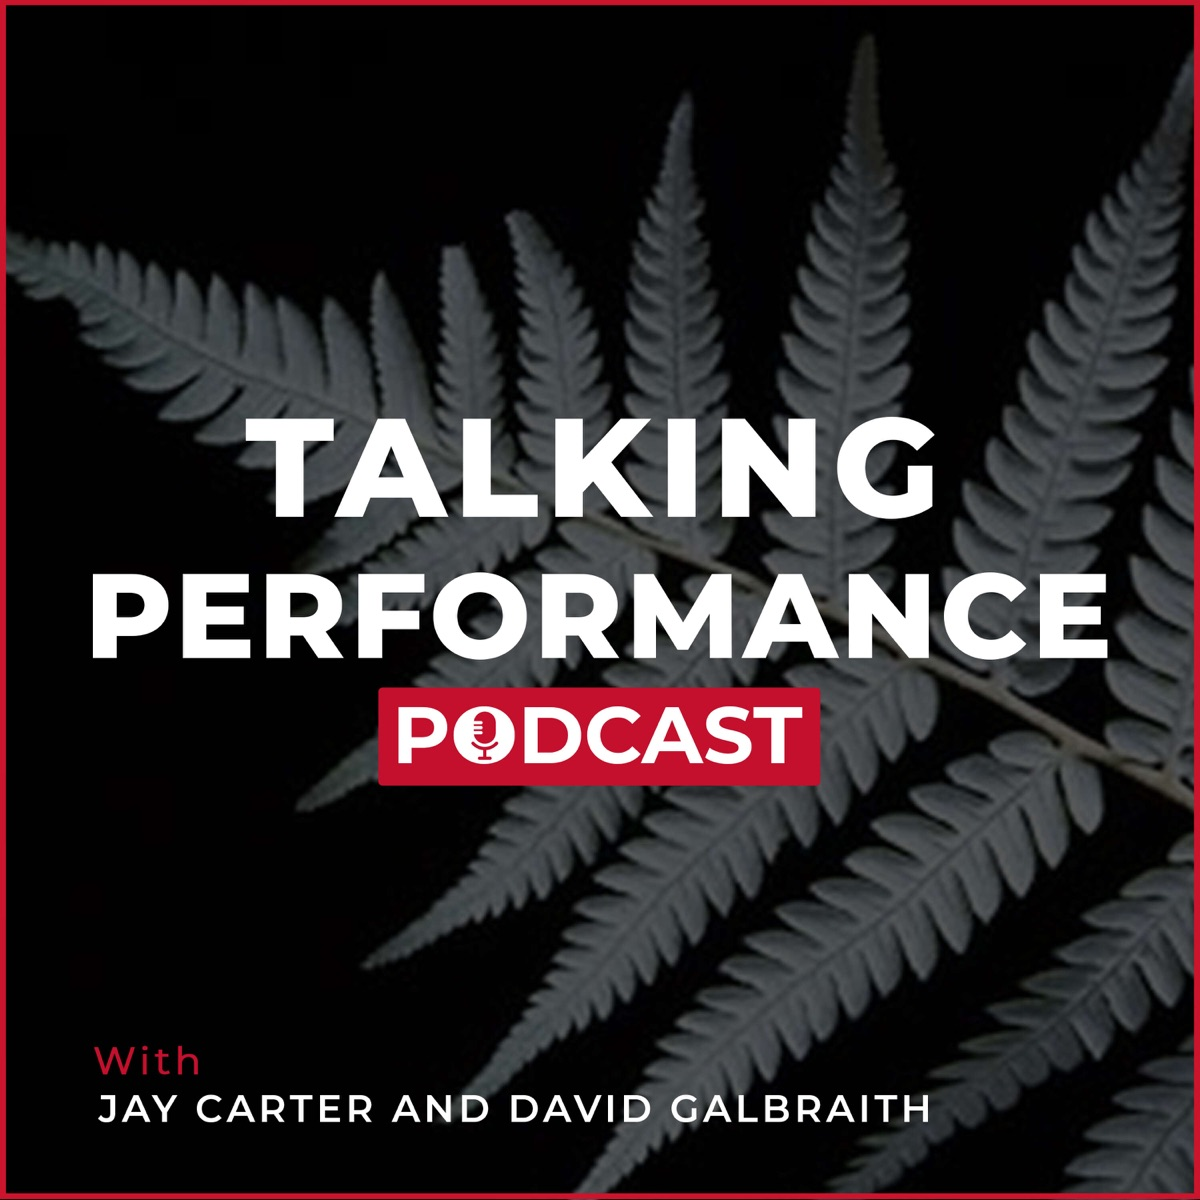 Talking Performance Episode 32 Interviewing DG part 2